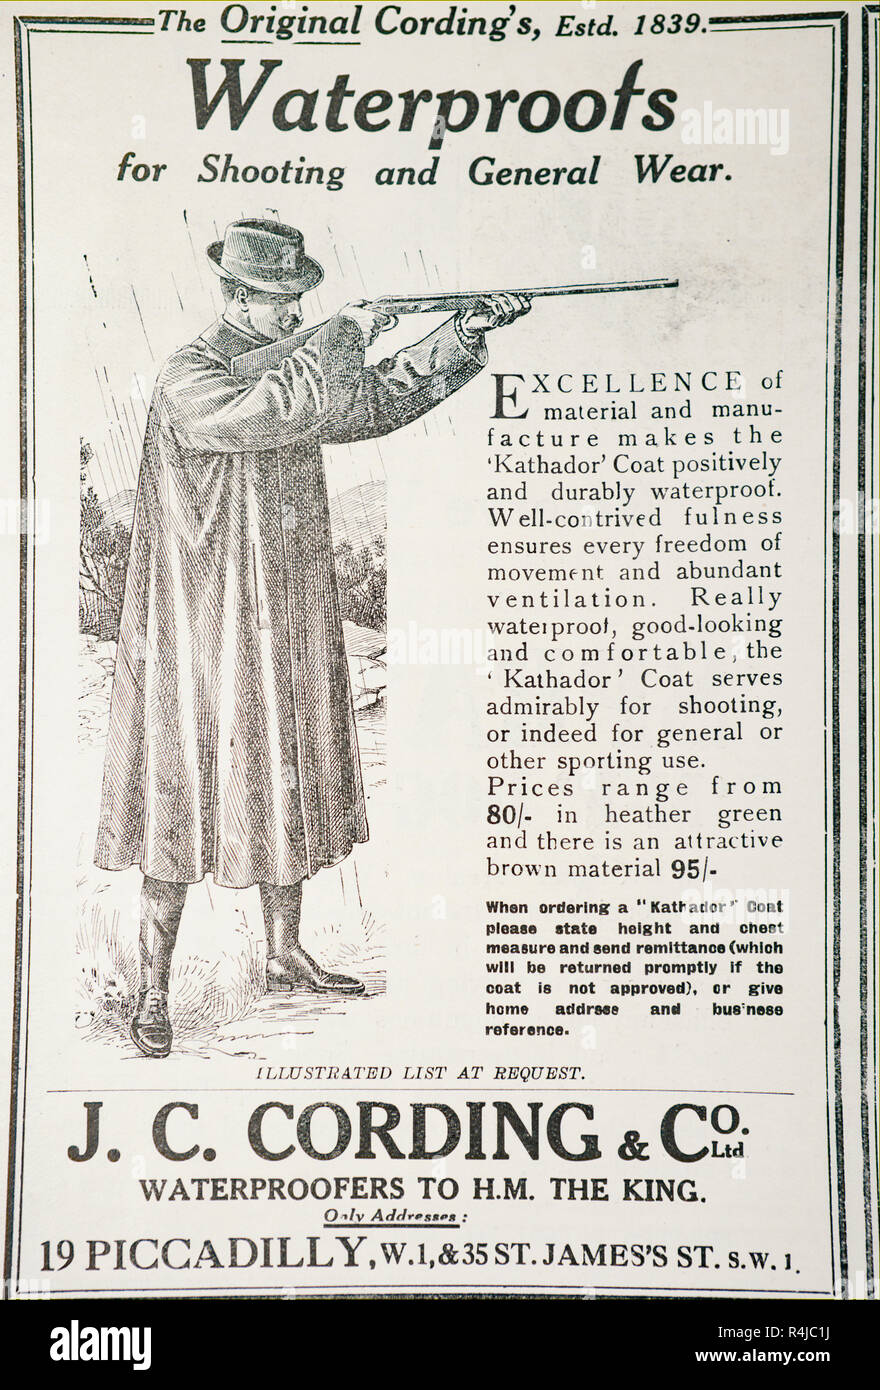 An old advert for J.C. Cording & Co for waterproof clothing. From an old British magazine from the 1914-1919 period. - Stock Image